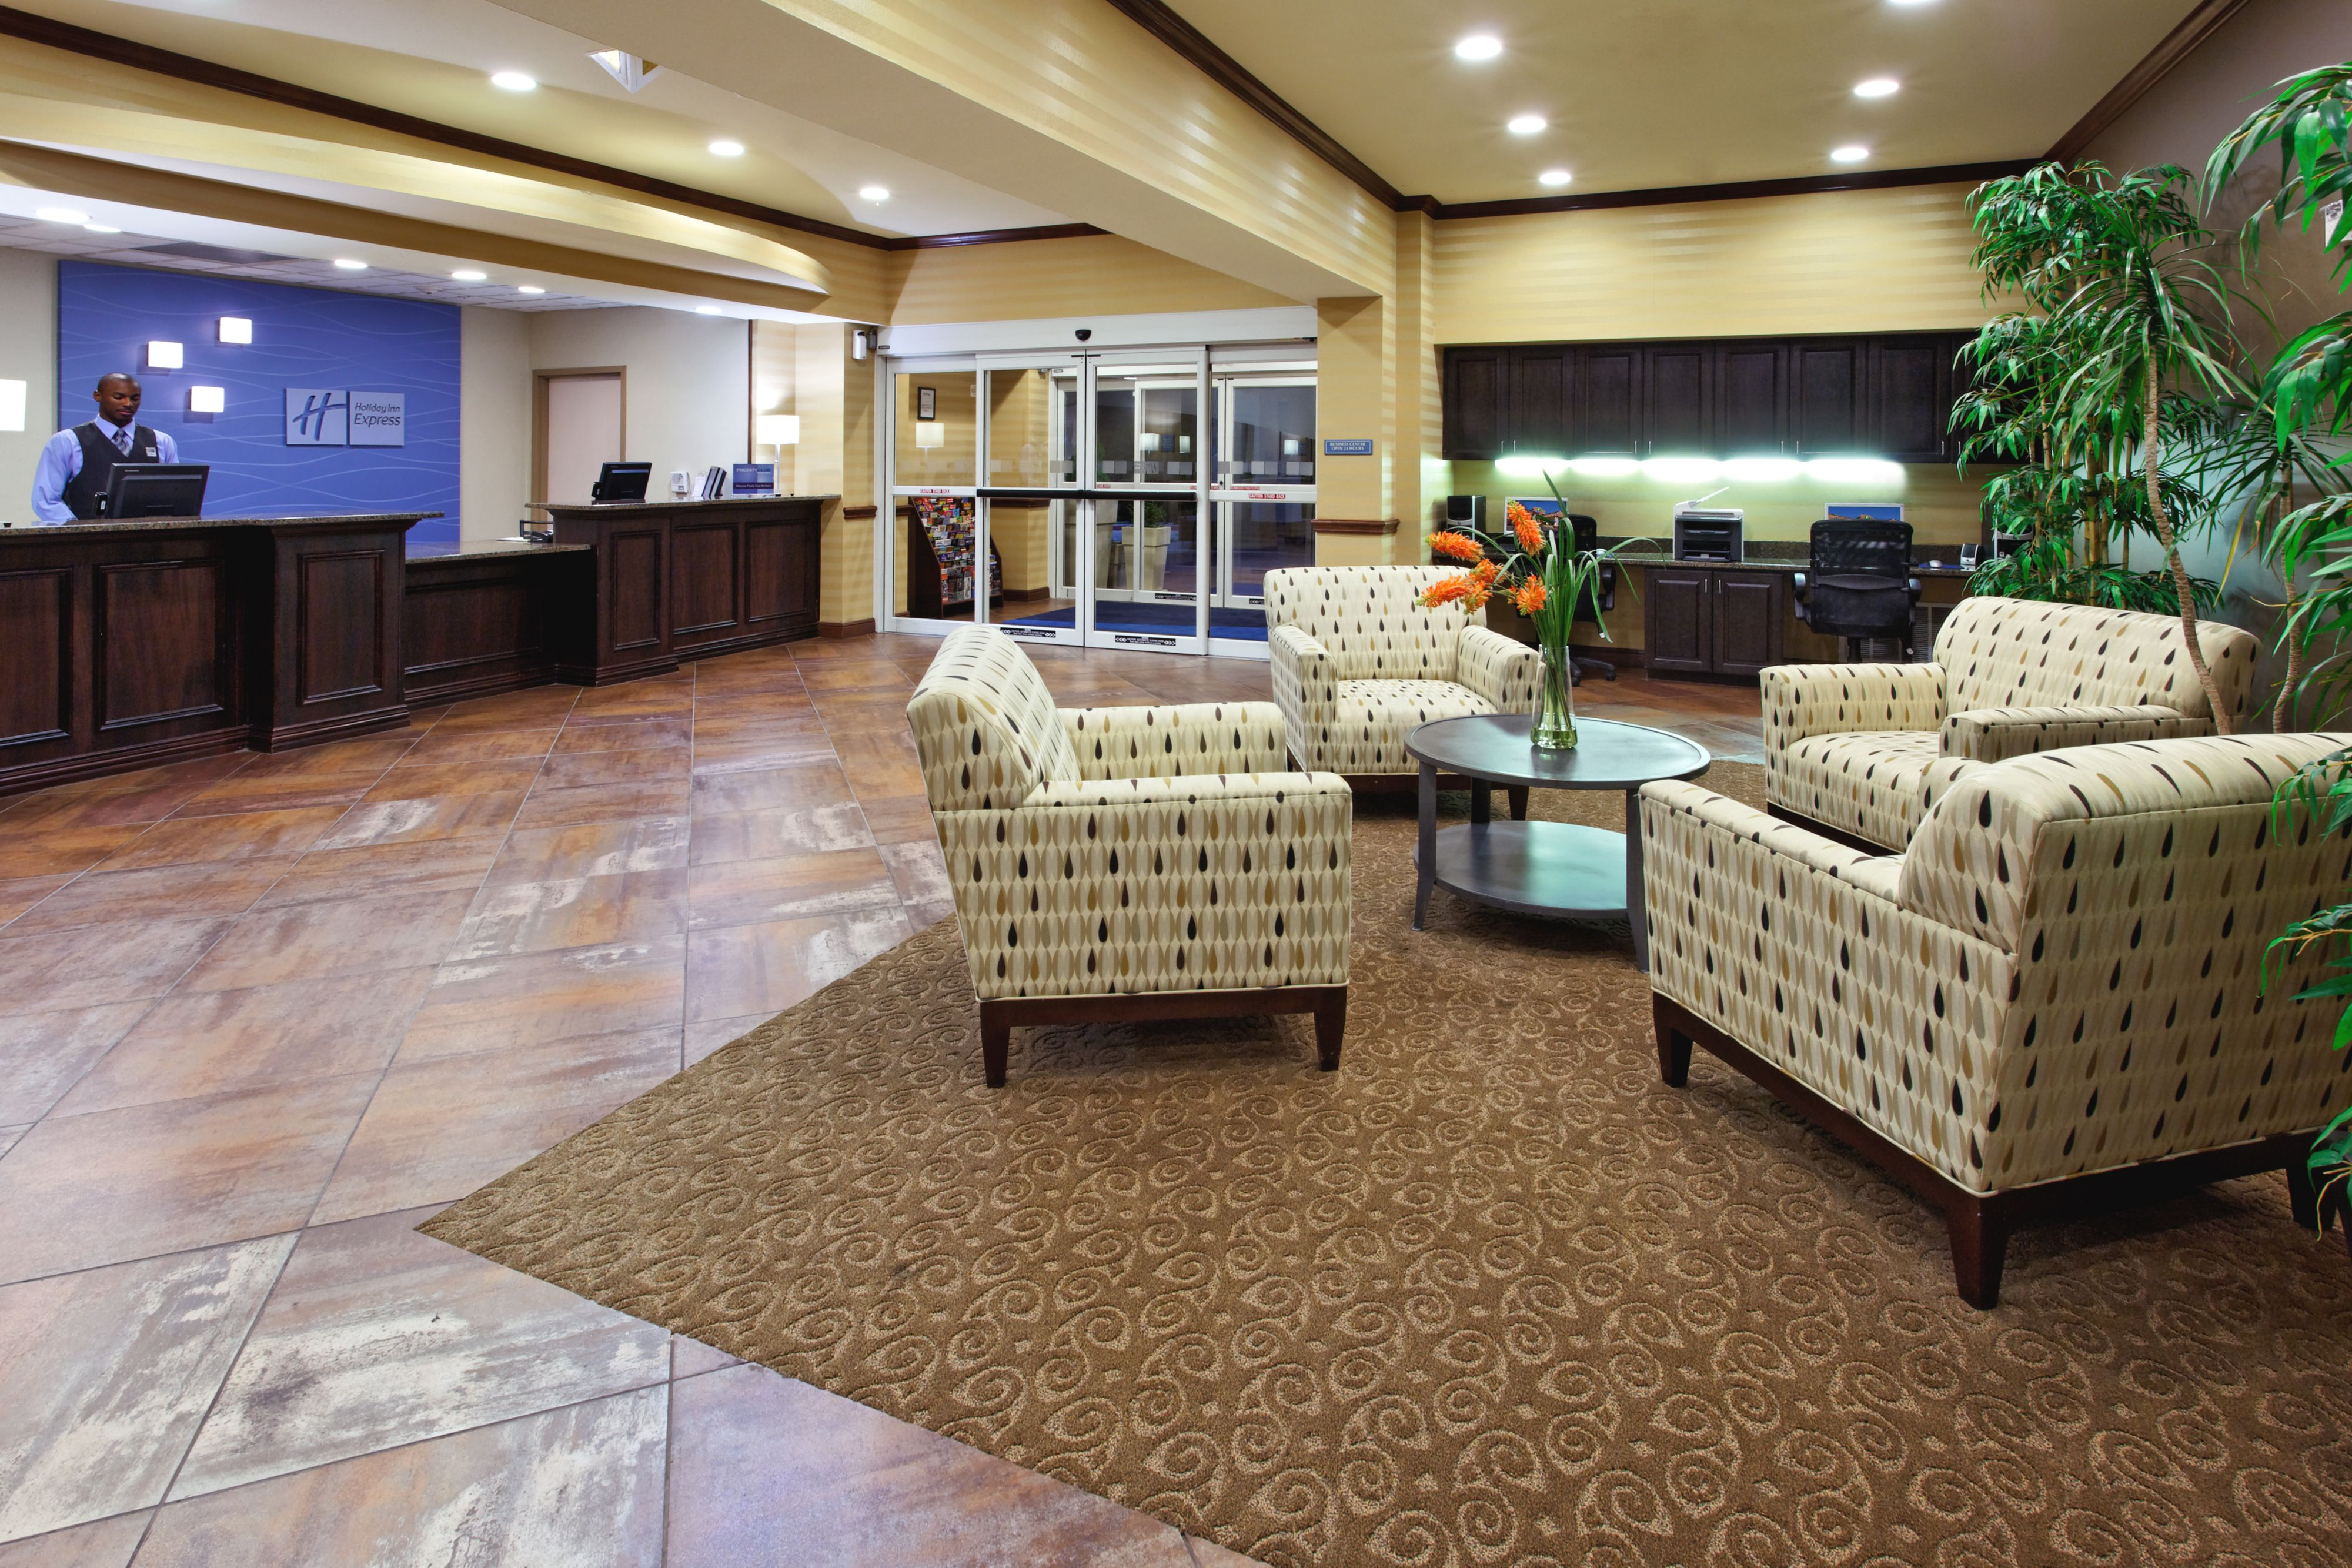 Holiday Inn Express & Suites Cleburne image 4